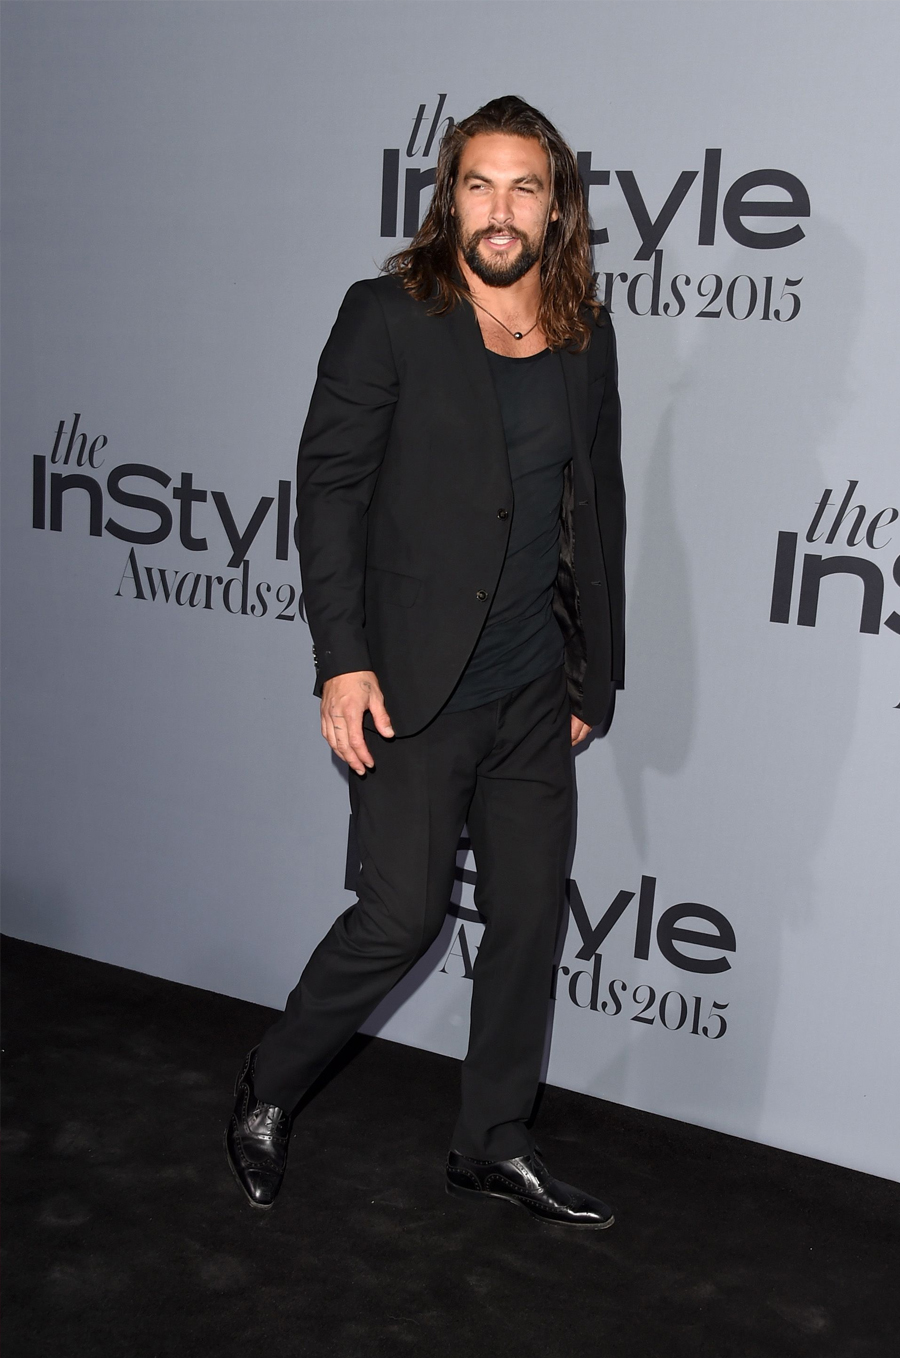 Jason Mamoa in all black attire